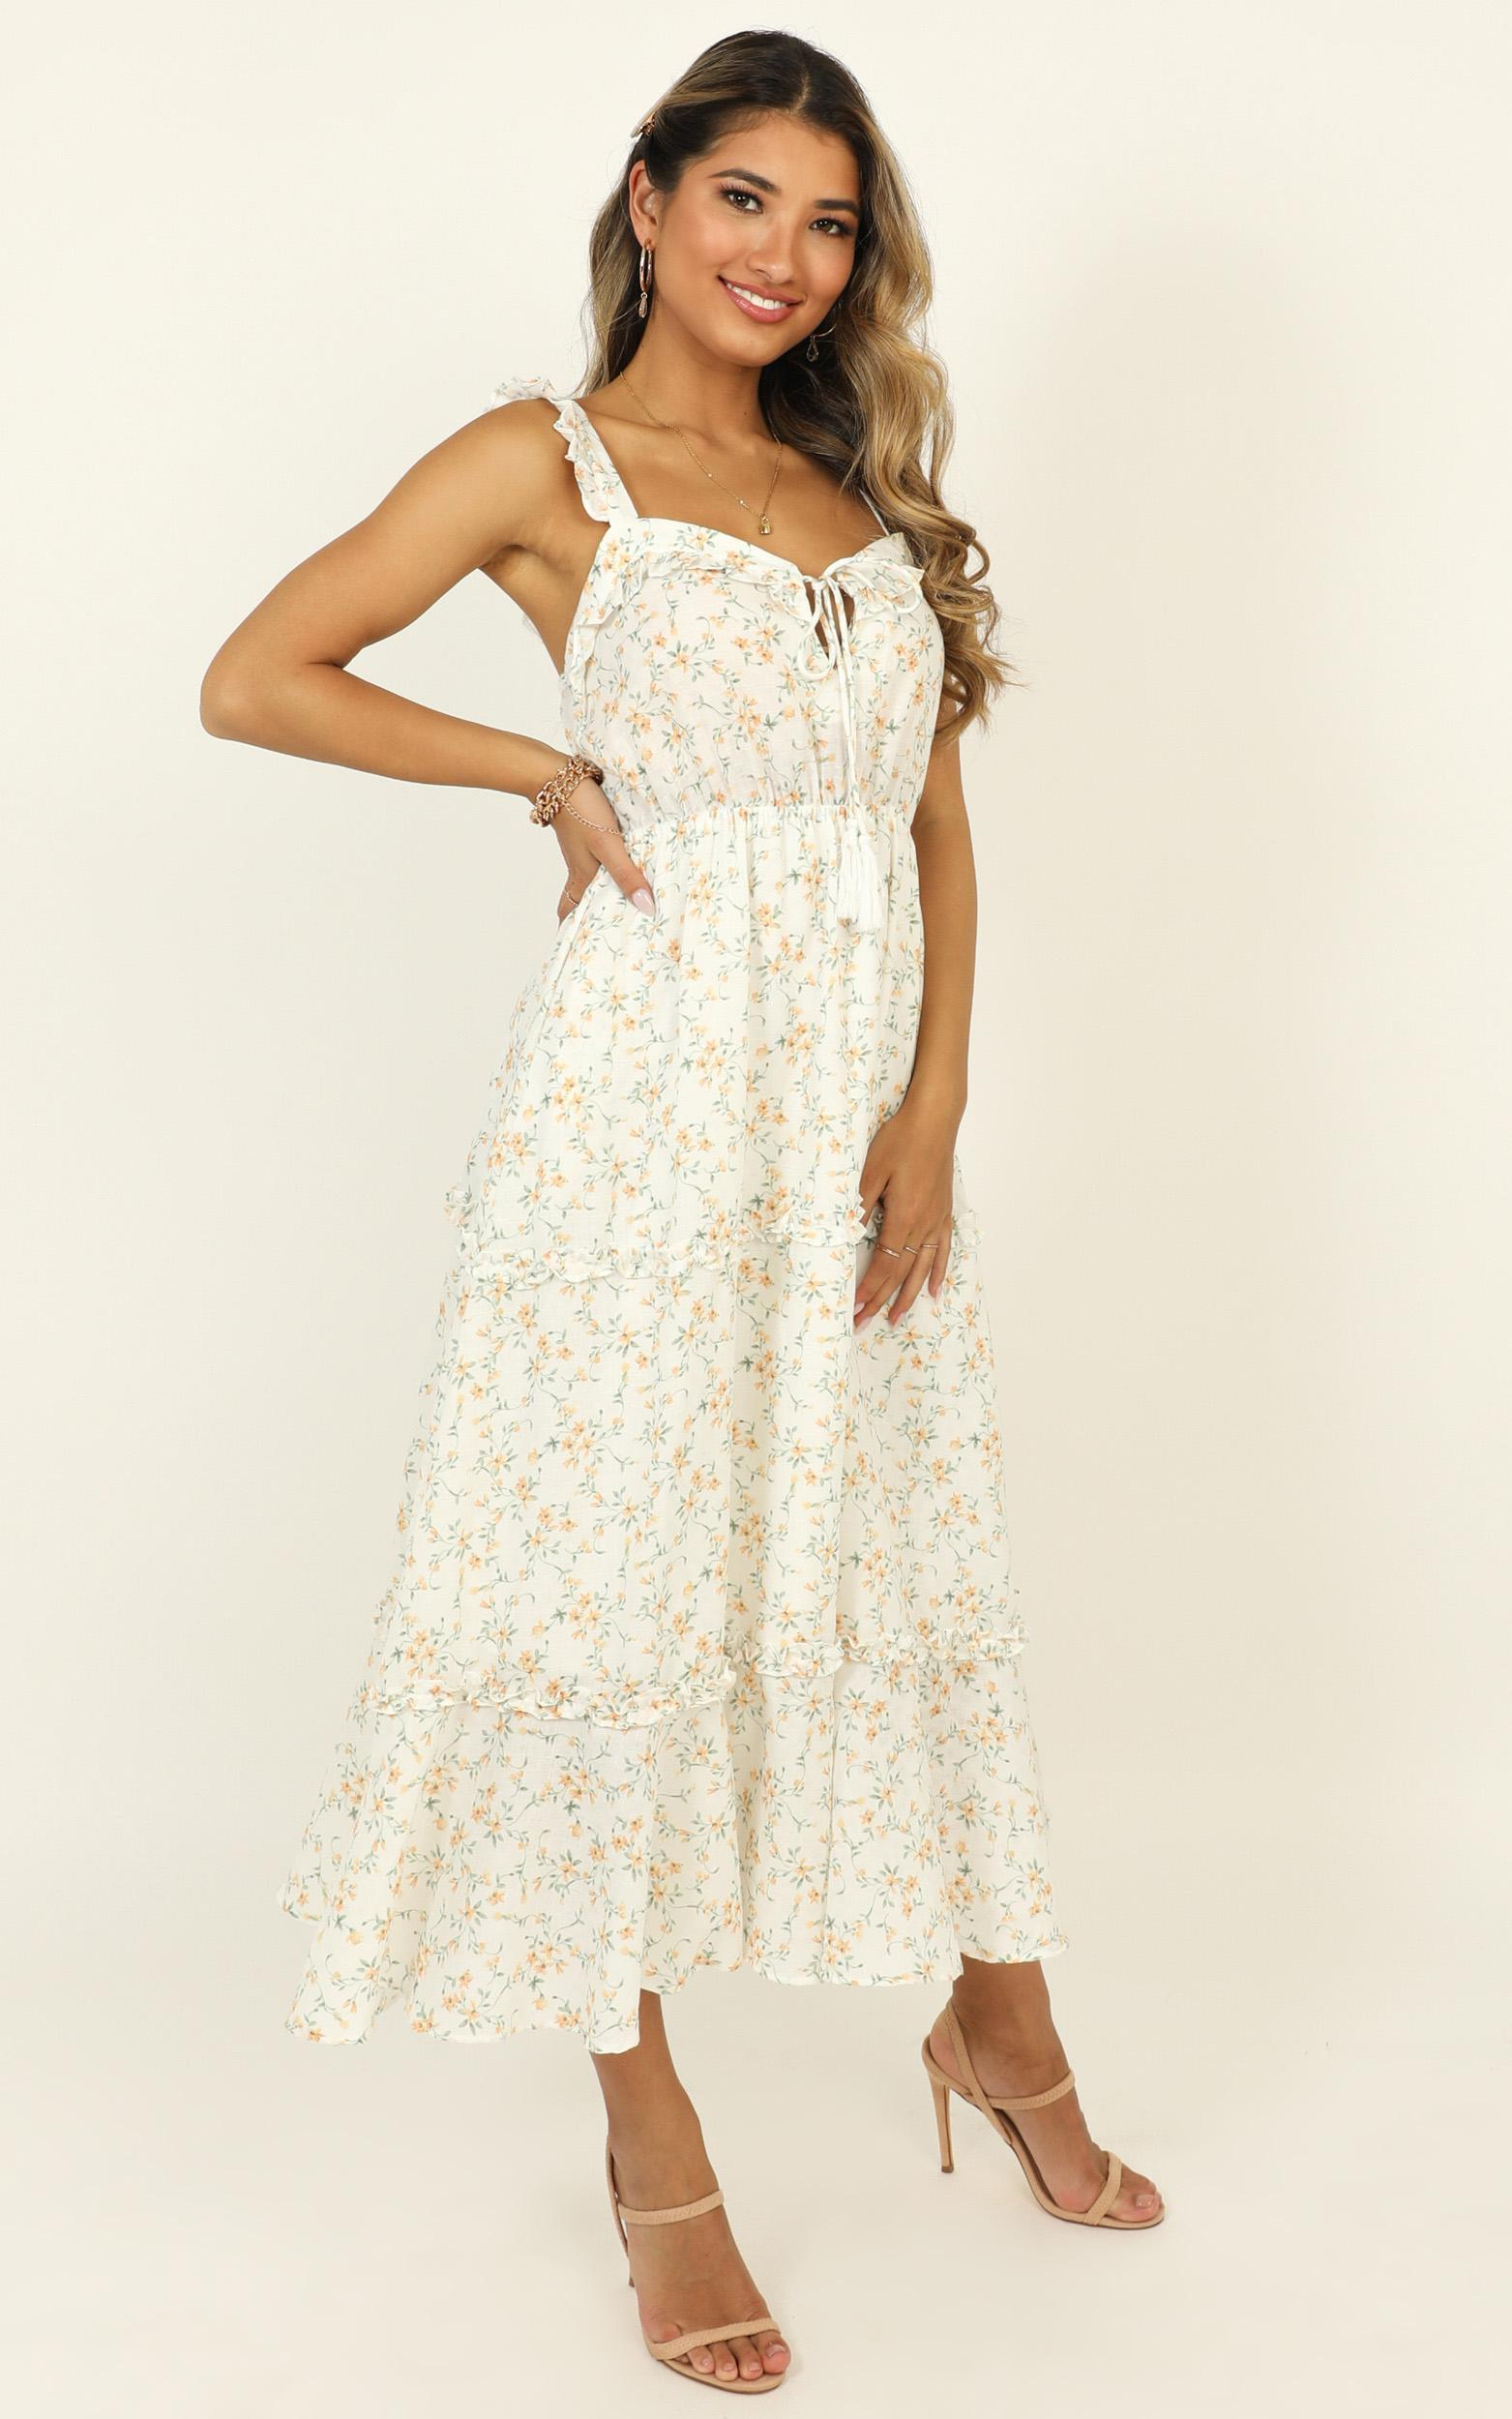 Peace And Quiet dress in white floral - 12 (L), White, hi-res image number null